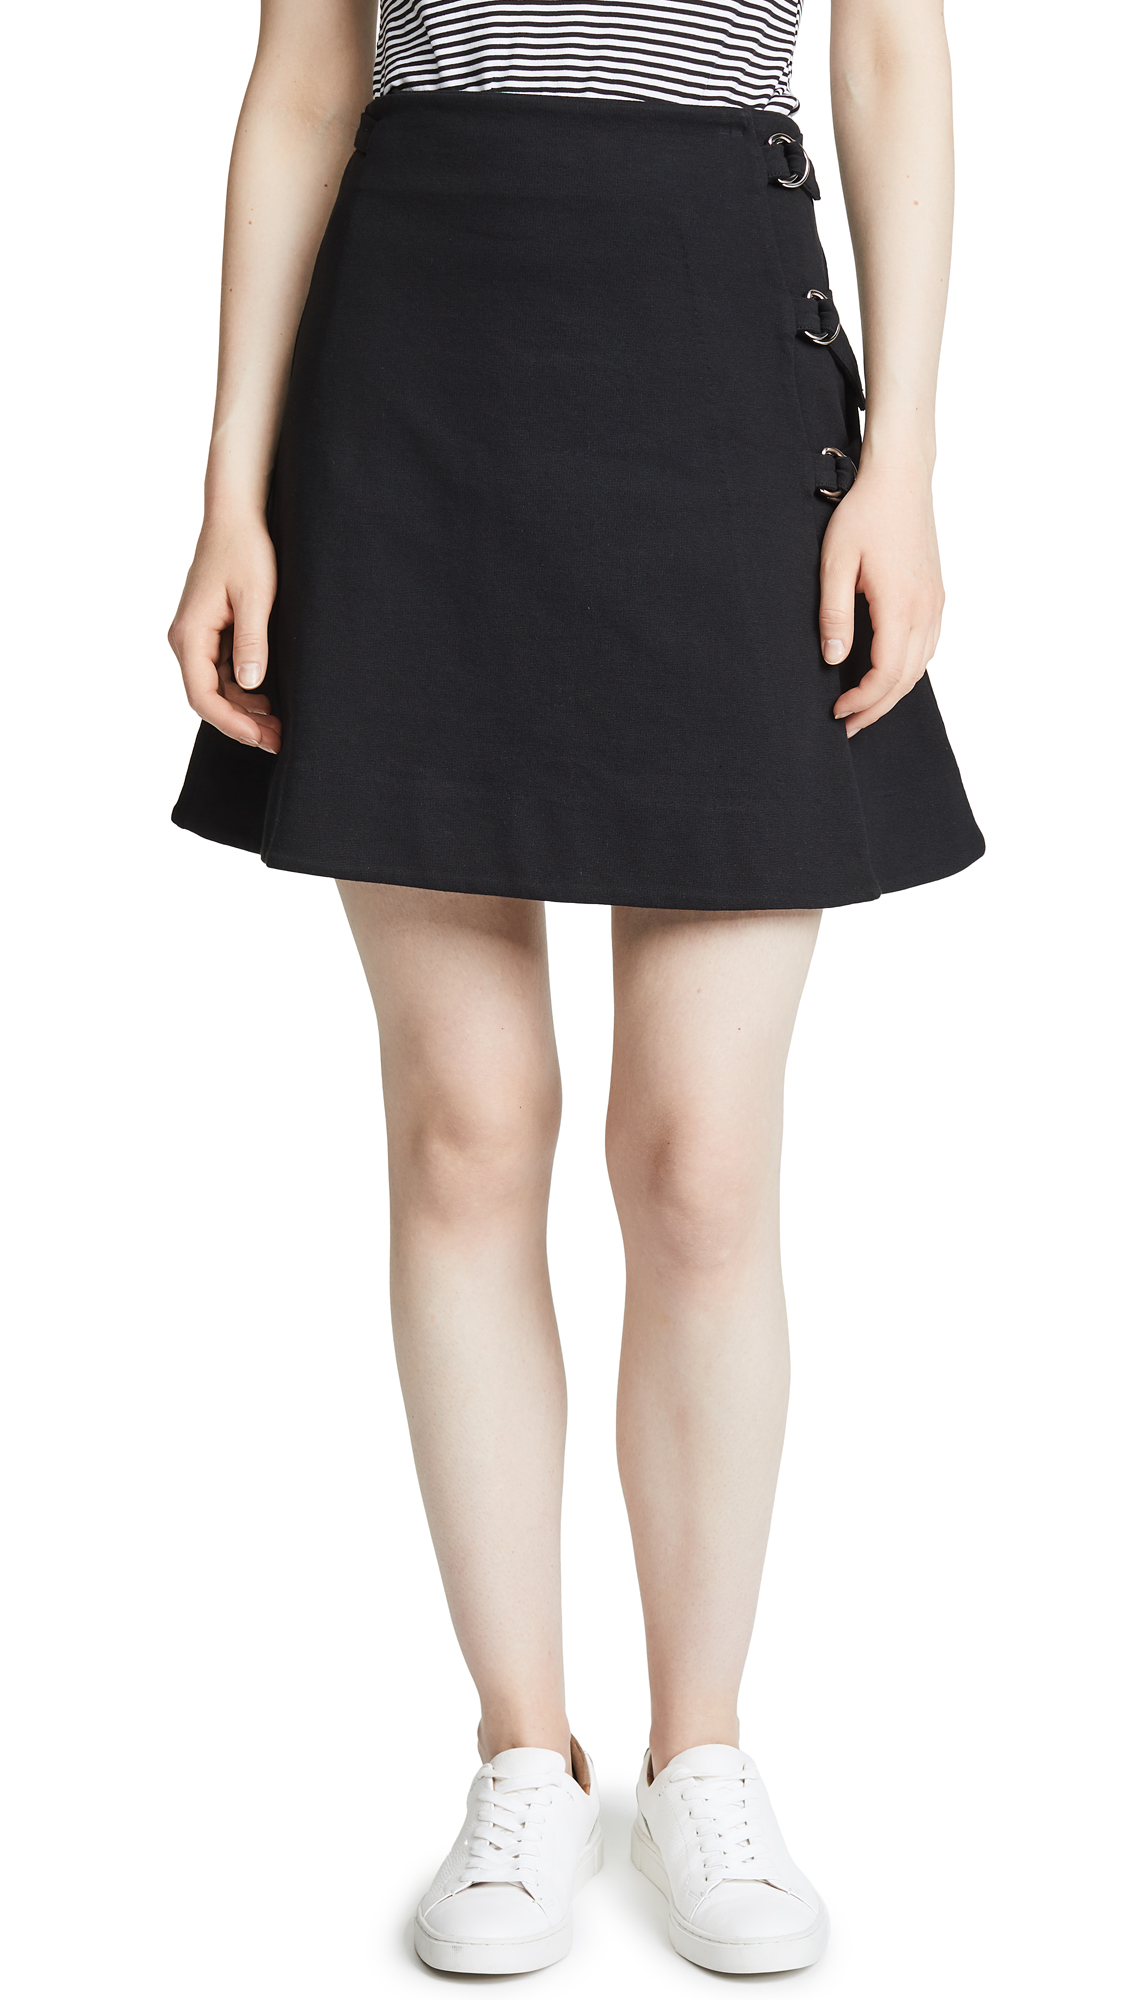 Maison Kitsune Eyelet Skirt In Black